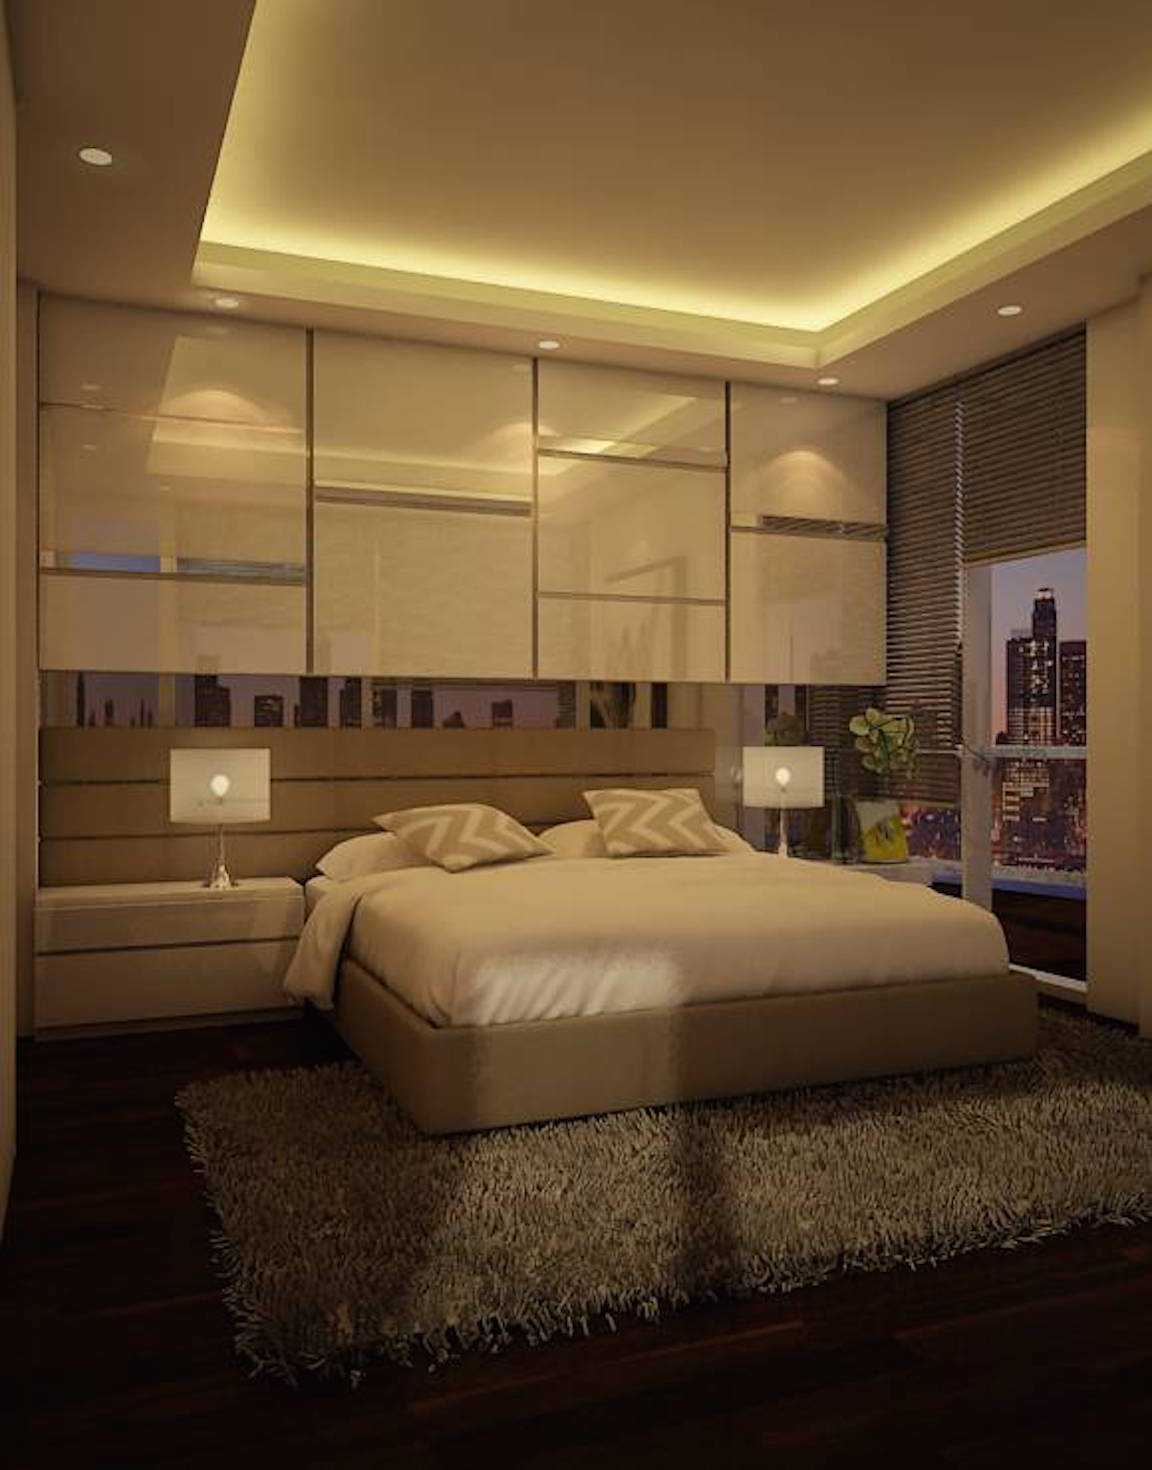 Expo Tje. Aa.aa.bsc.ba.ma The Suitroom With Office Function Apartment Jakarta, Indonesia Green Hill Suitroom Apartment Urbanisme Master Room Modern 26538